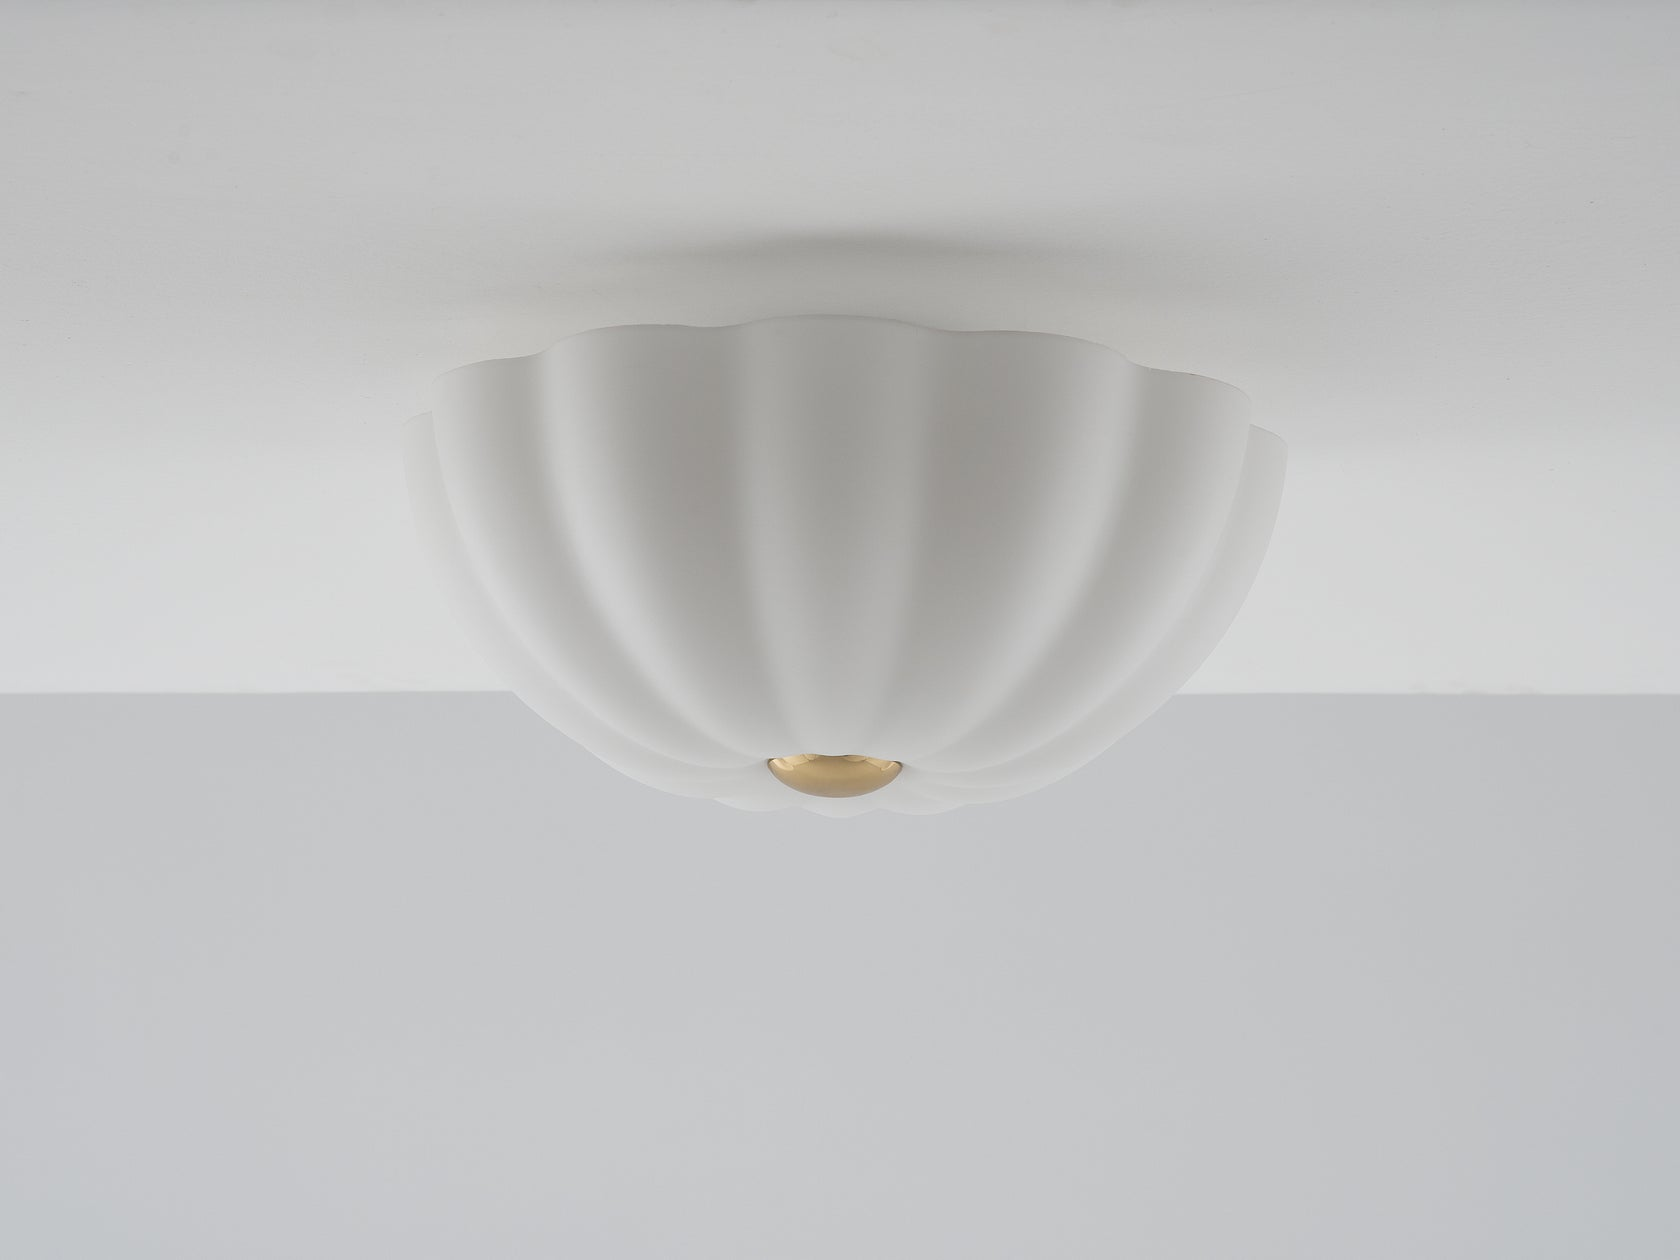 Flower flush light opal | off | houseof.com